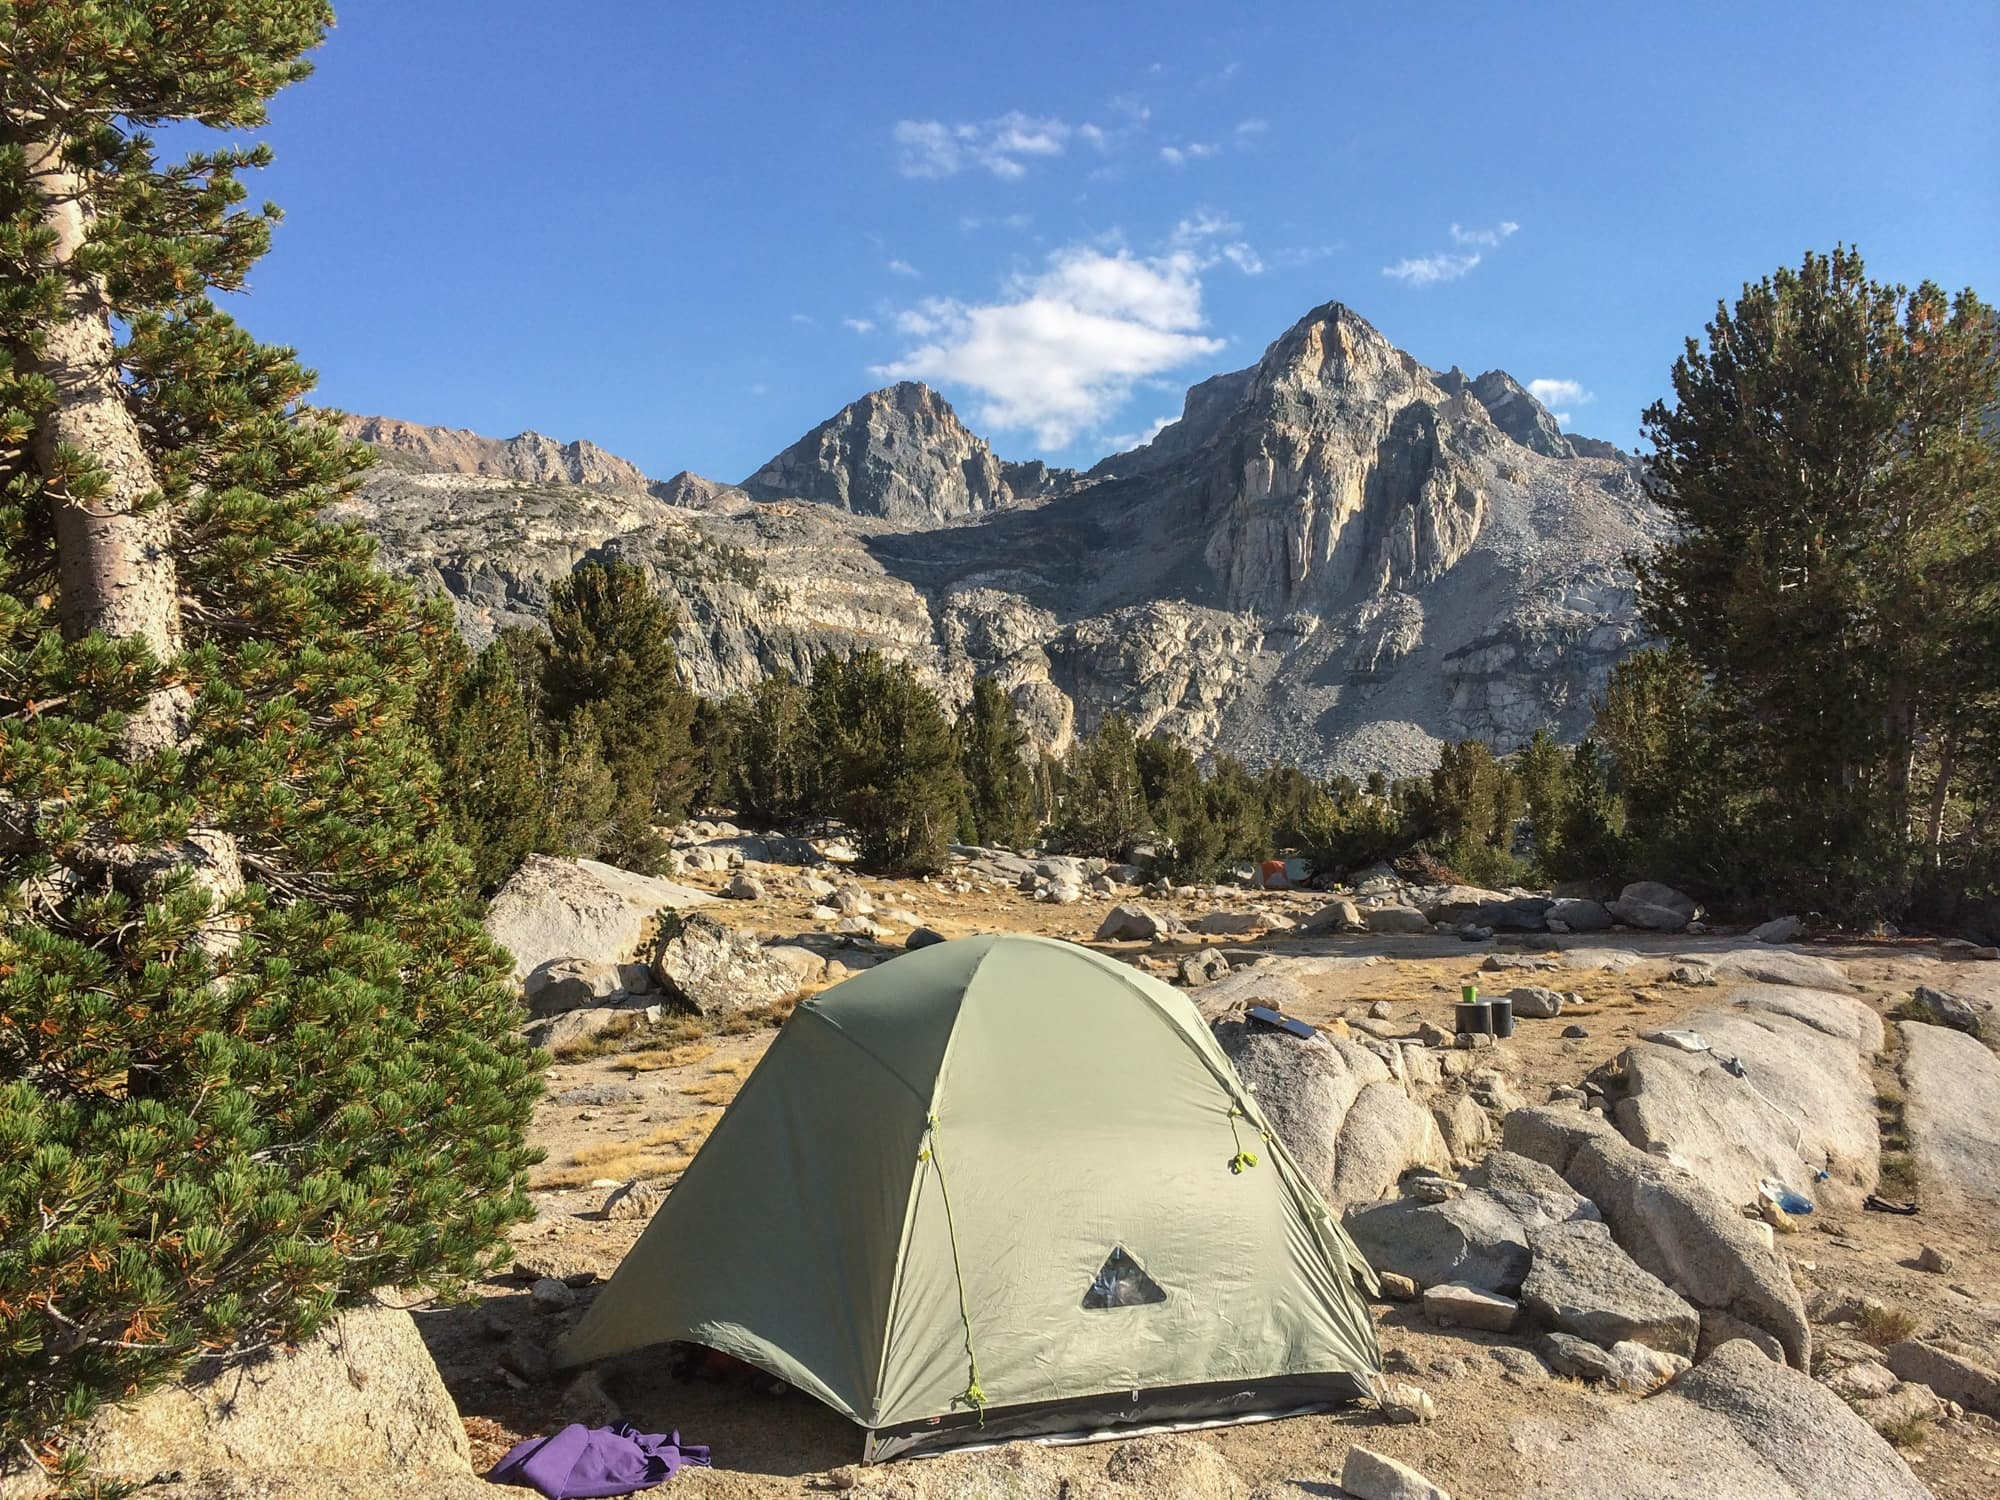 Prepare for the John Muir Trail by brushing up on Leave No Trace. Get tips for going to the bathroom, choosing a campsite, food storage & more on the JMT.